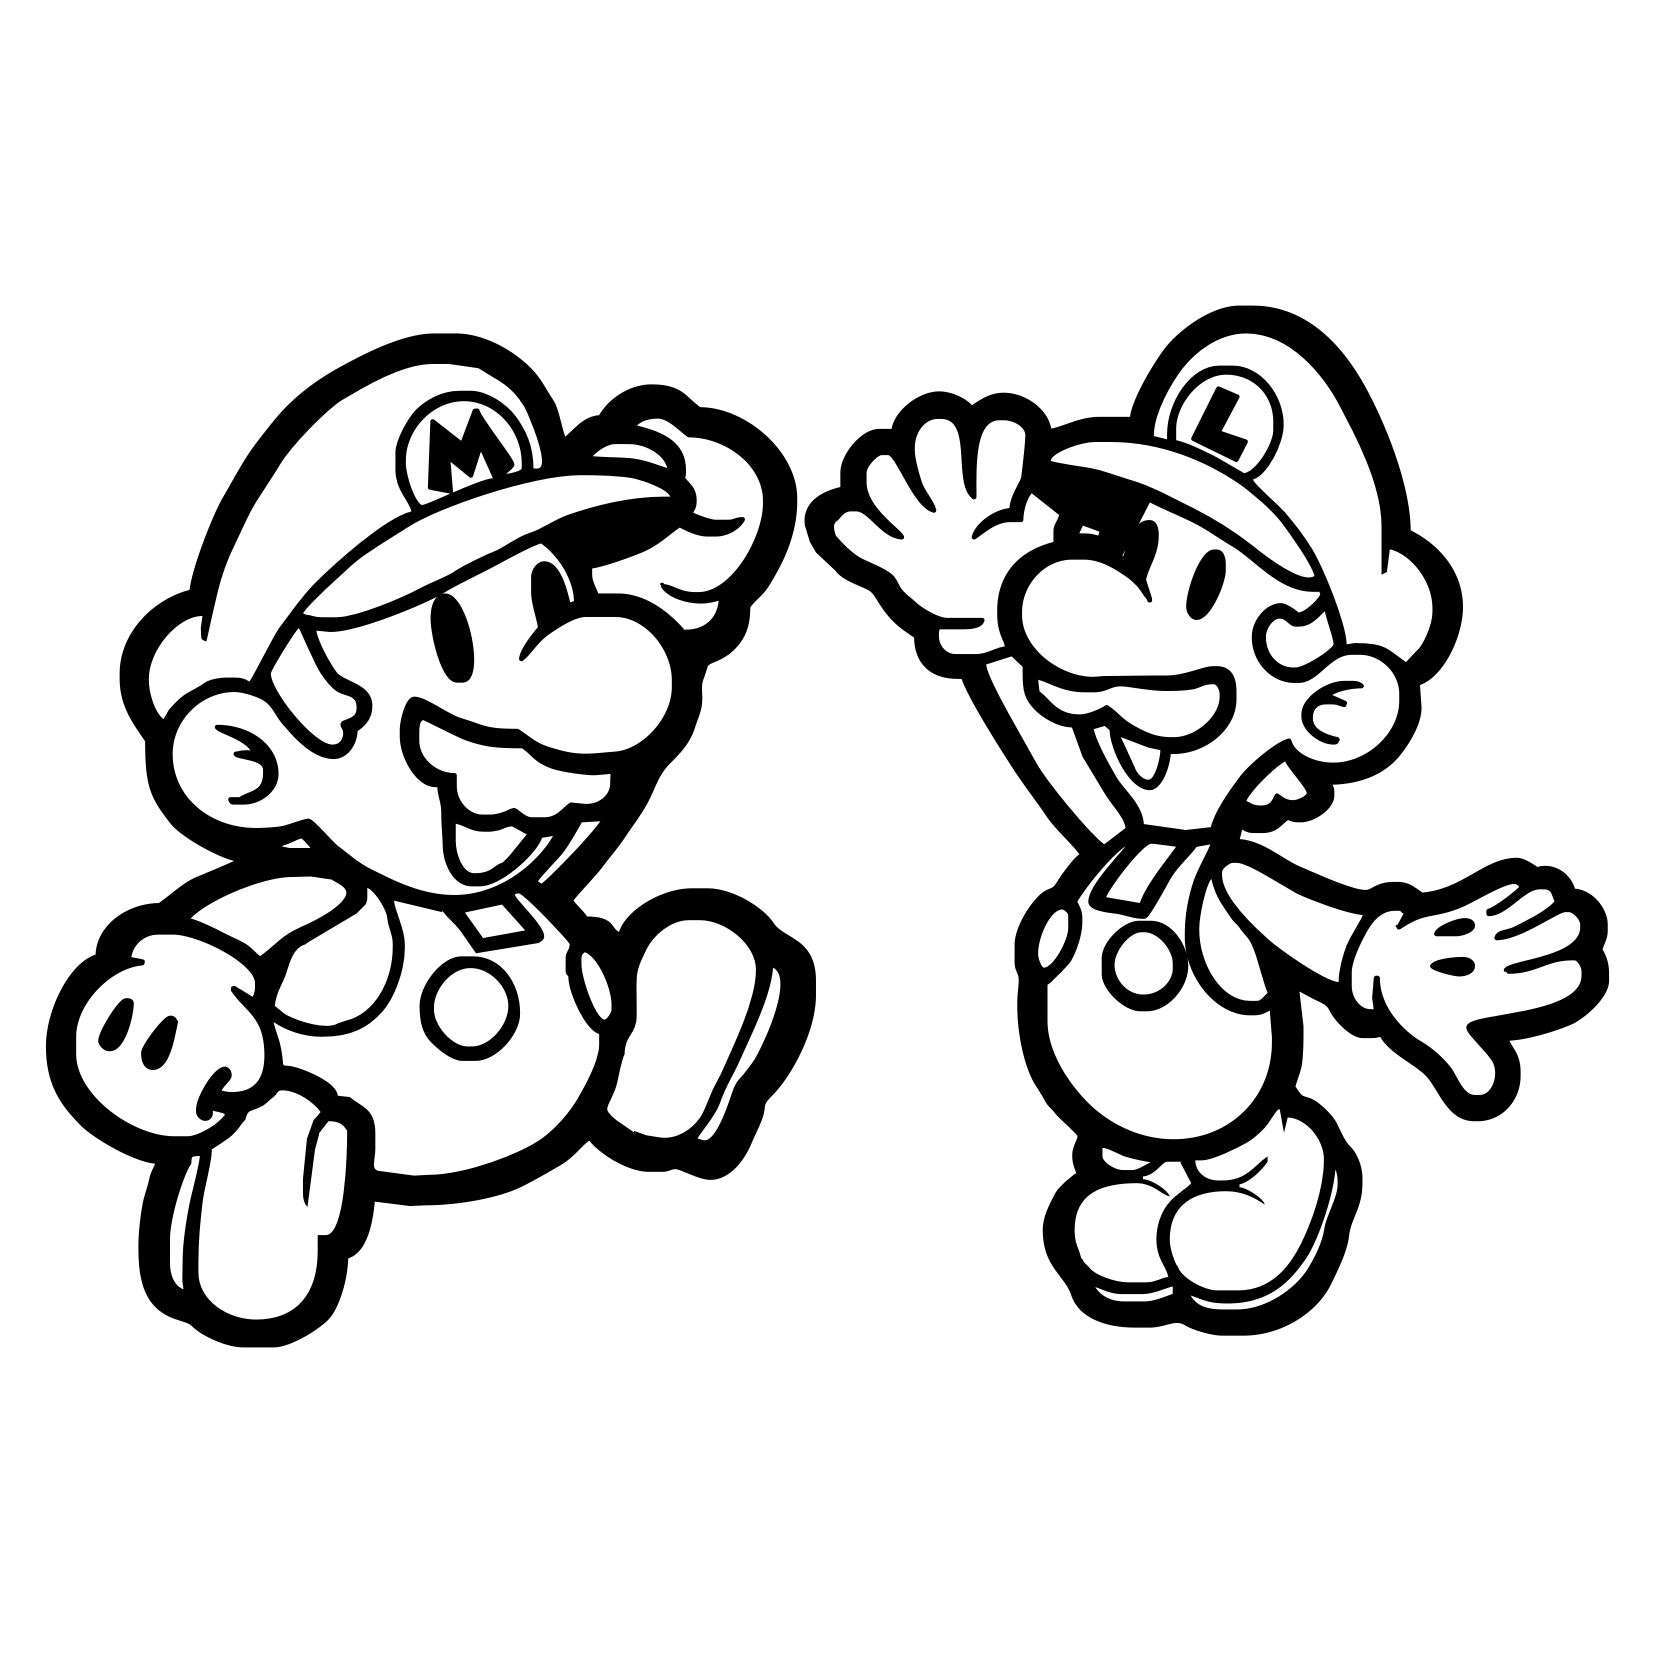 Super Mario Odyssey Coloring Pages to Print Download Of Super Mario Coloring Pages Bonnieleepanda Gallery